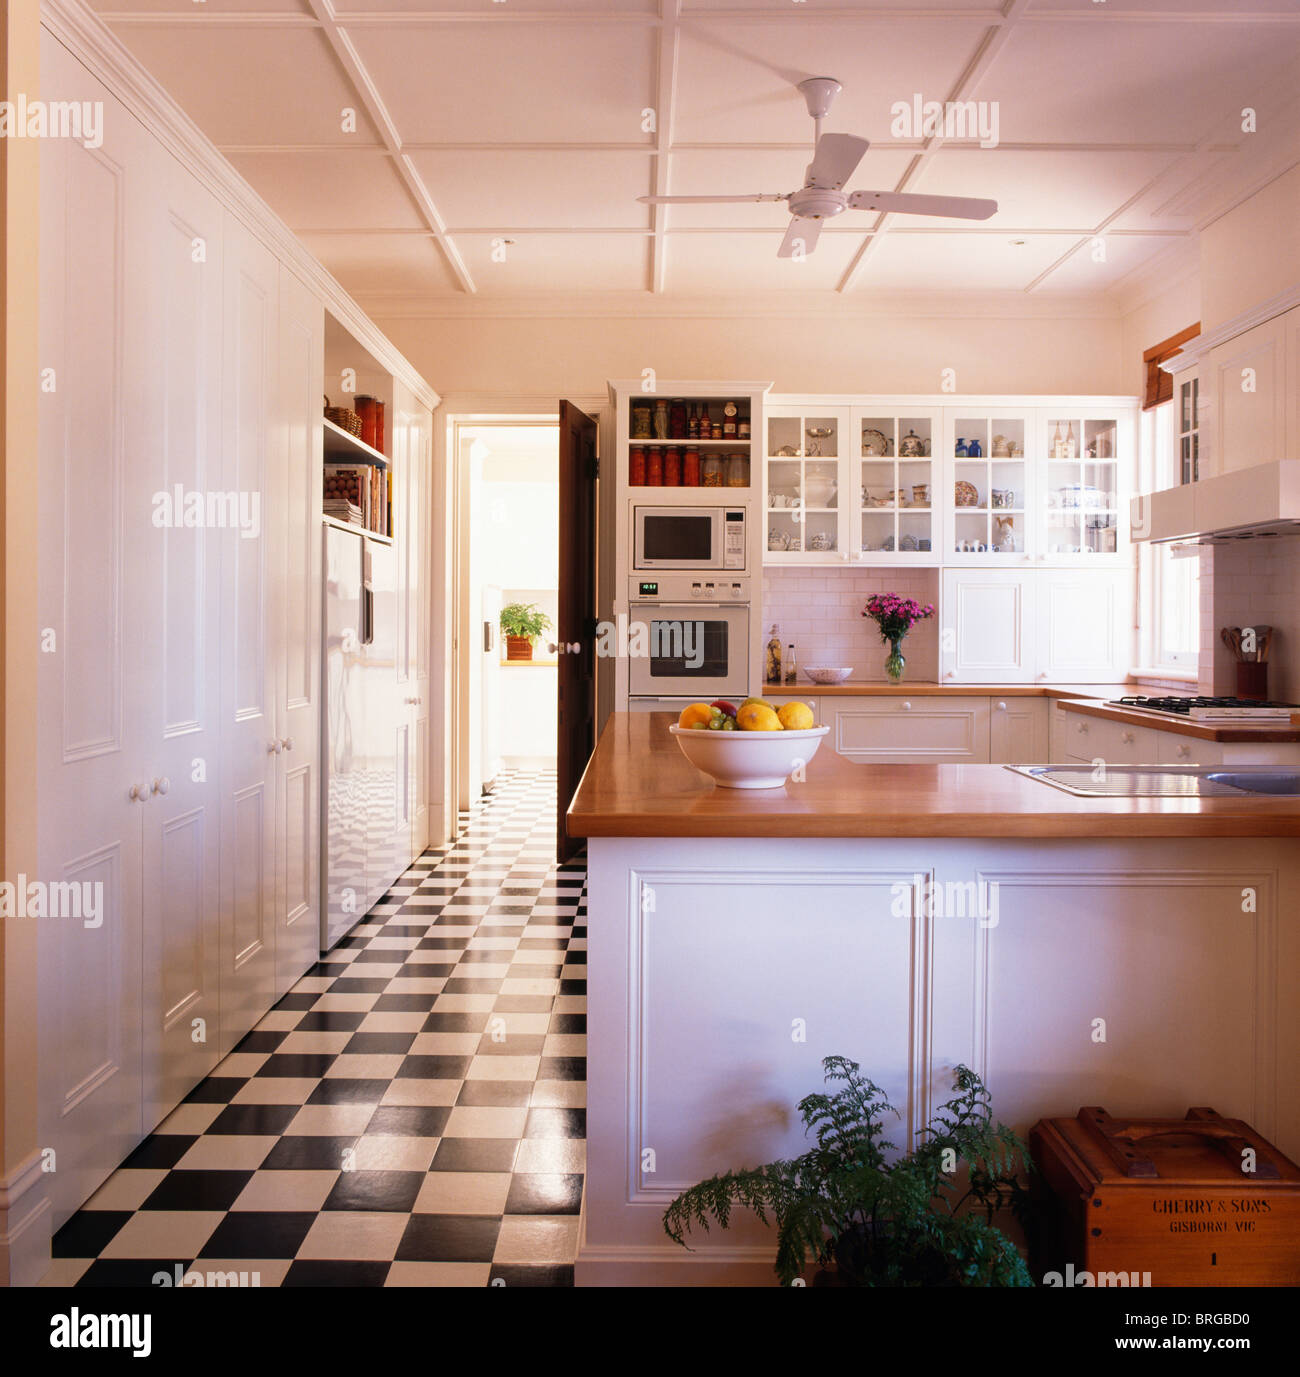 stock photo blackwhite checkerboard vinyl flooring in large modern white kitchen vinyl flooring kitchen Black white checkerboard vinyl flooring in large modern white kitchen with wooden worktops on fitted units